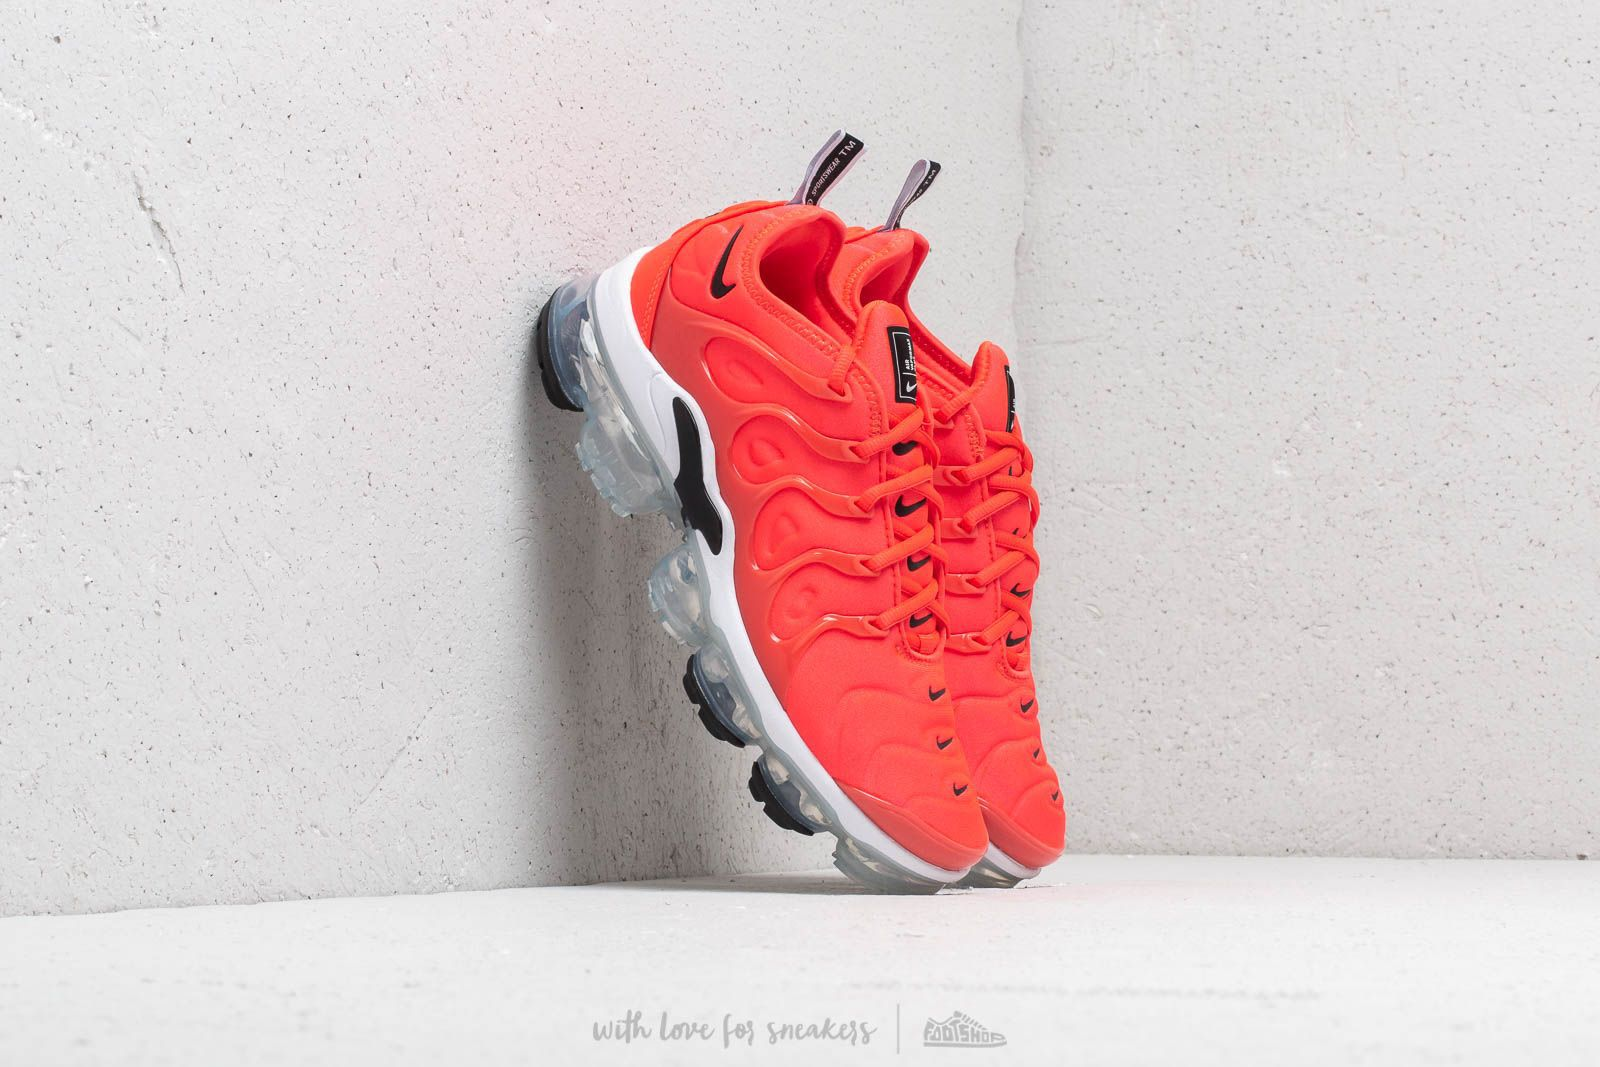 ff16d2b5de1 Nike Air Vapormax Plus Bright Crimson  Black-White at a great price 209 €